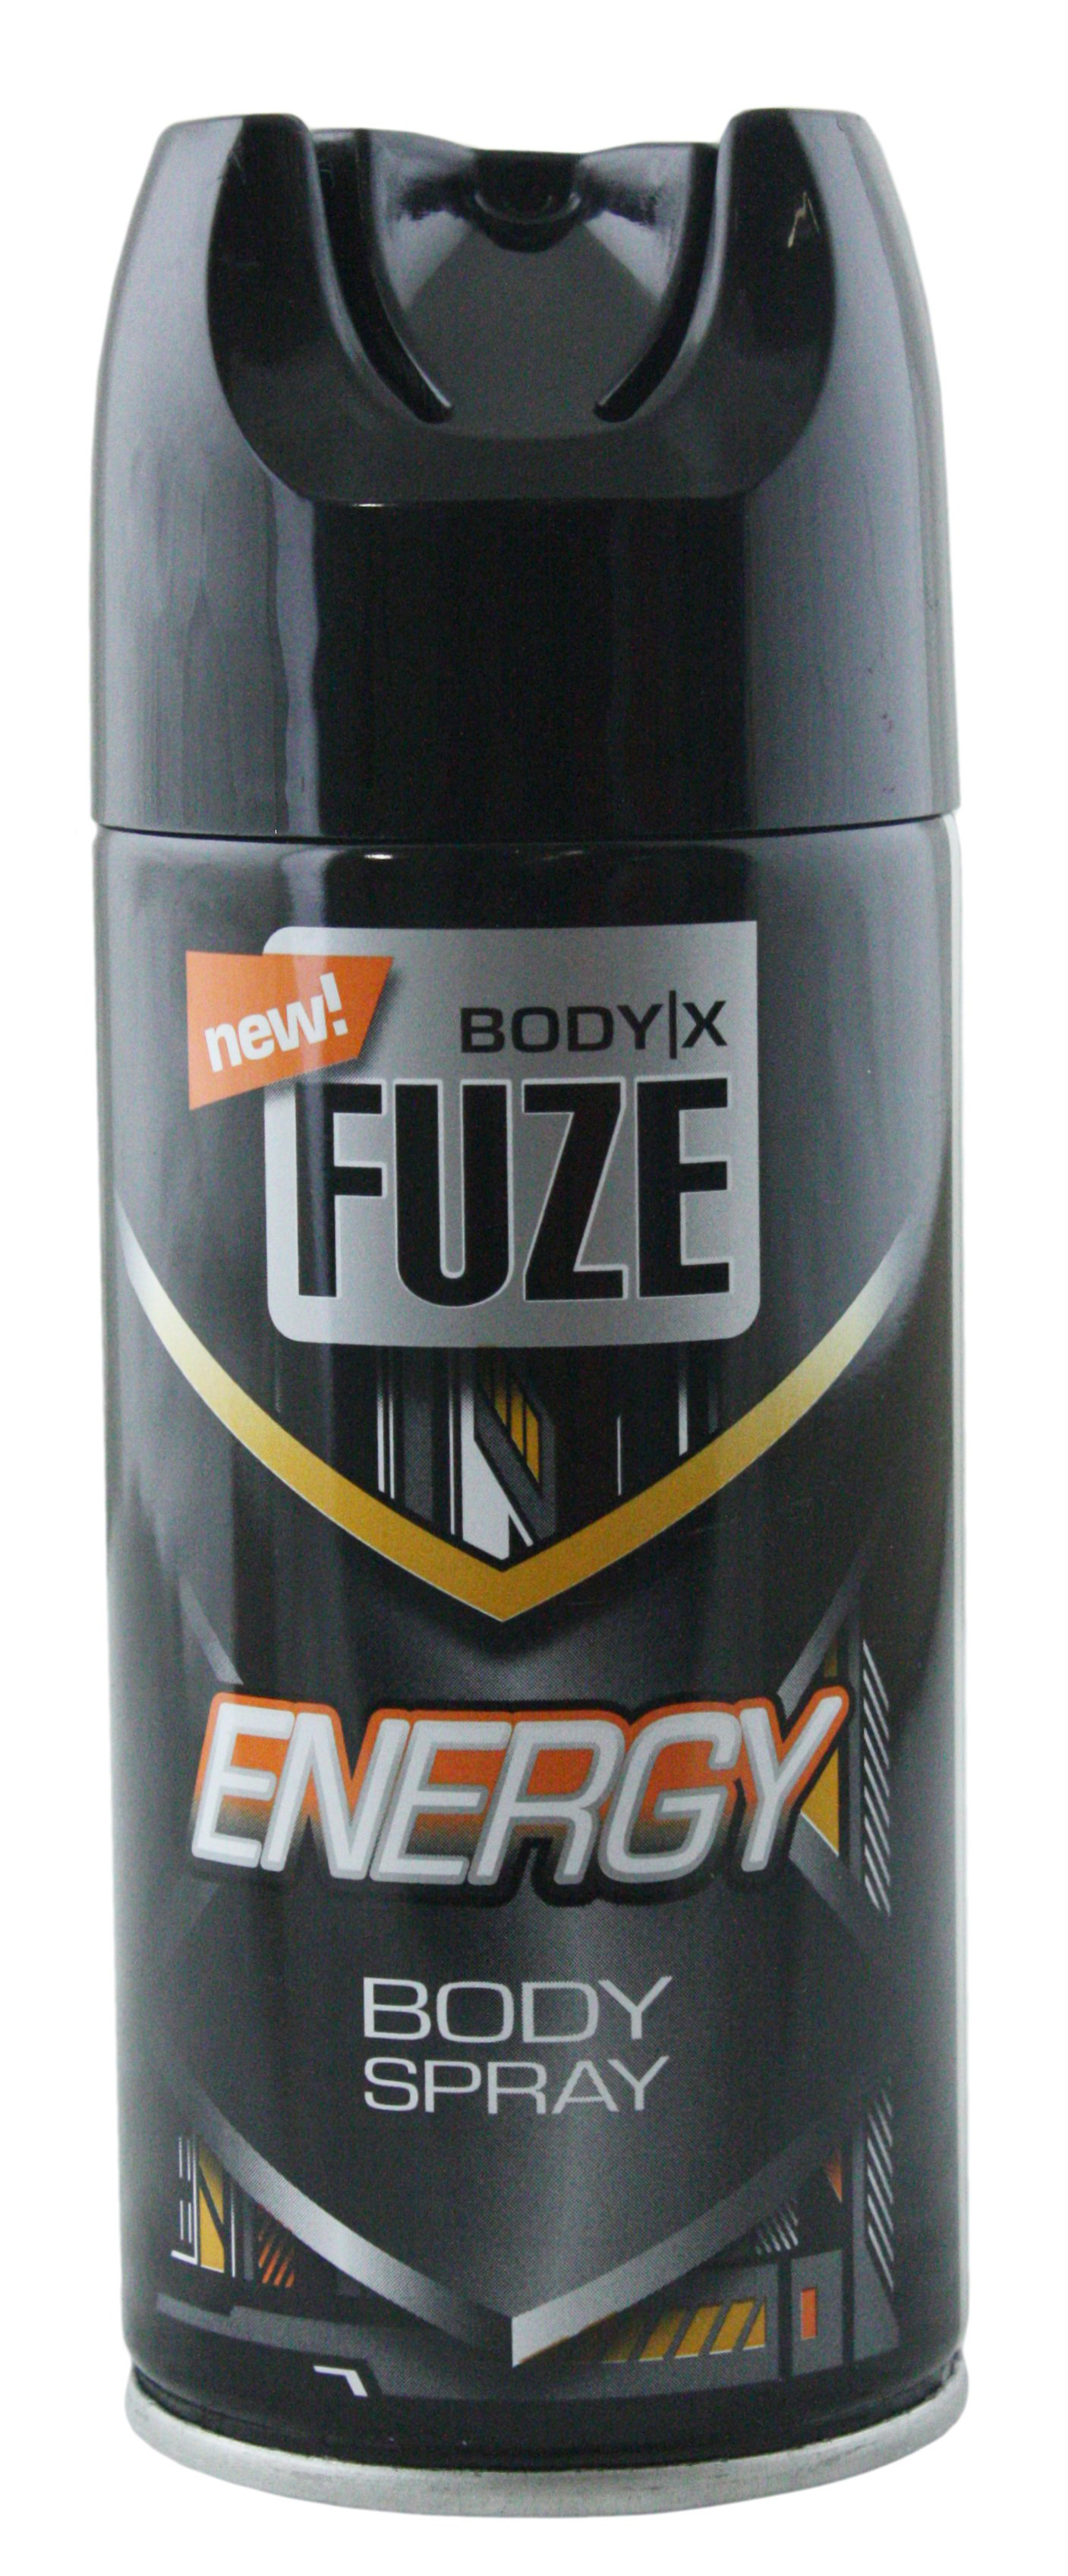 01662 - Deo- / Bodyspray for men, 150 ml - Energy